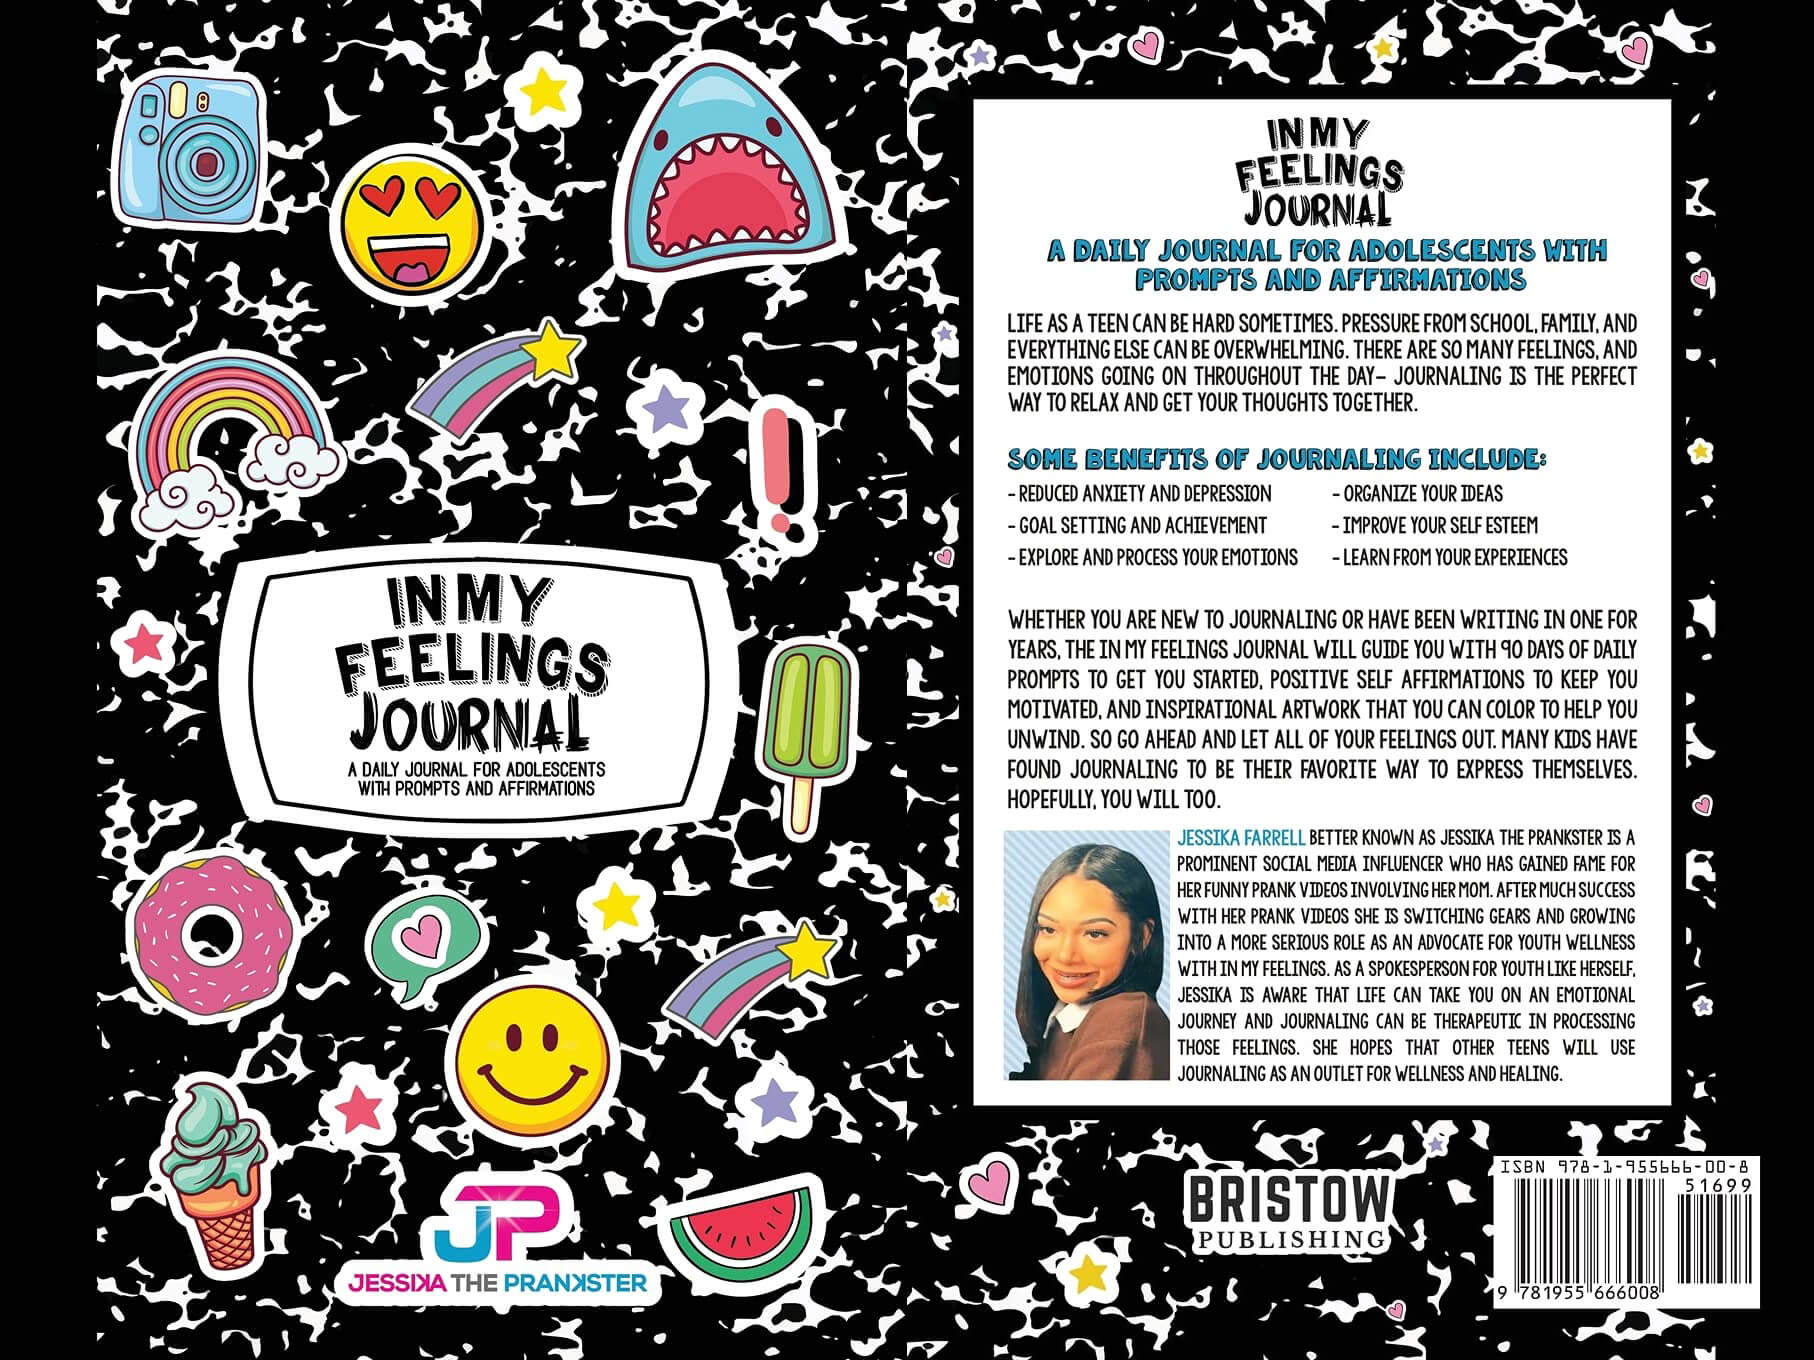 In My Feelings Journal front and back by Jessika the Prankster